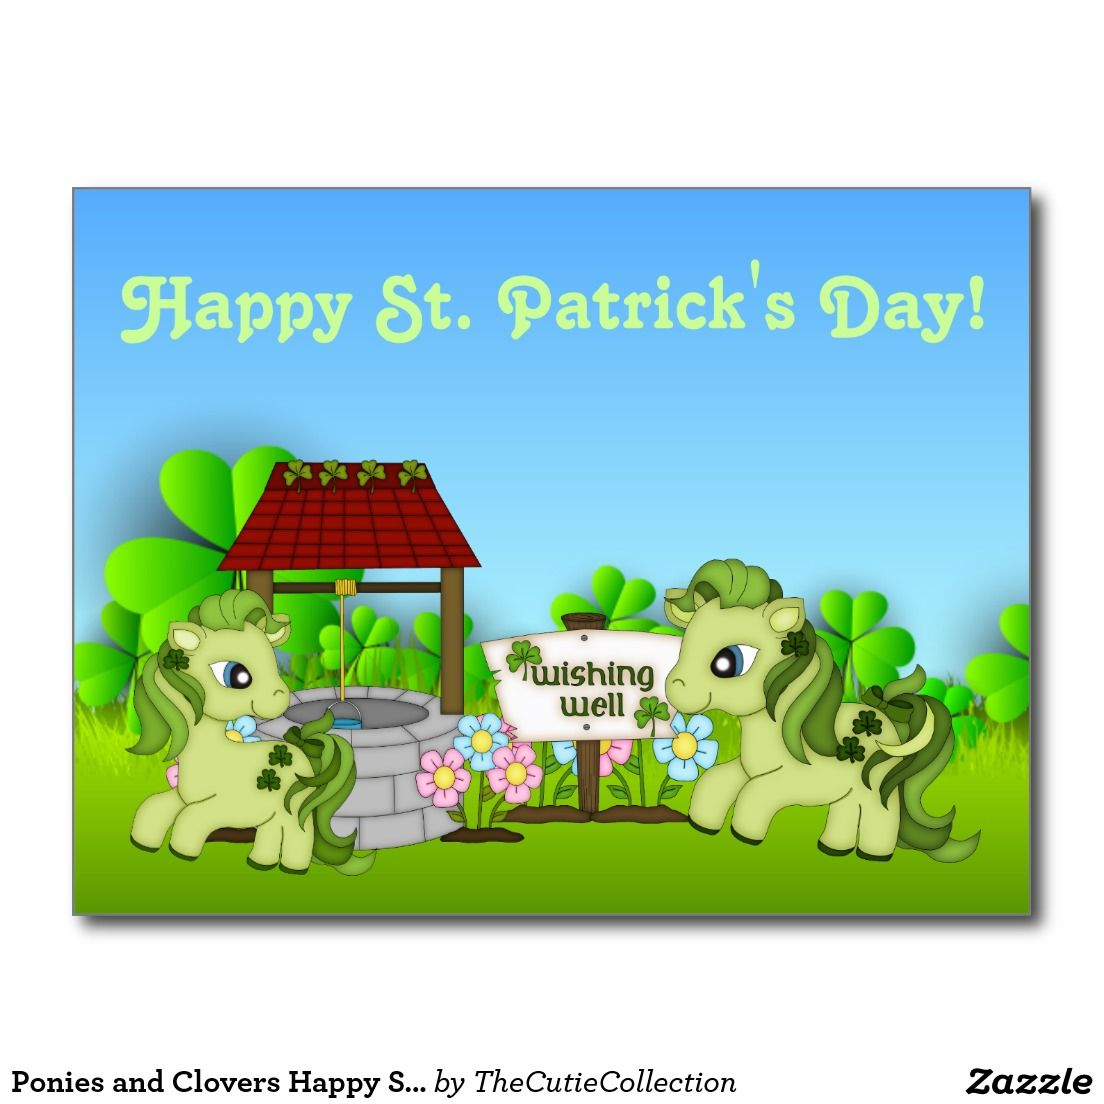 Ponies and Clovers Happy St. Patrick's Day Horse Postcard